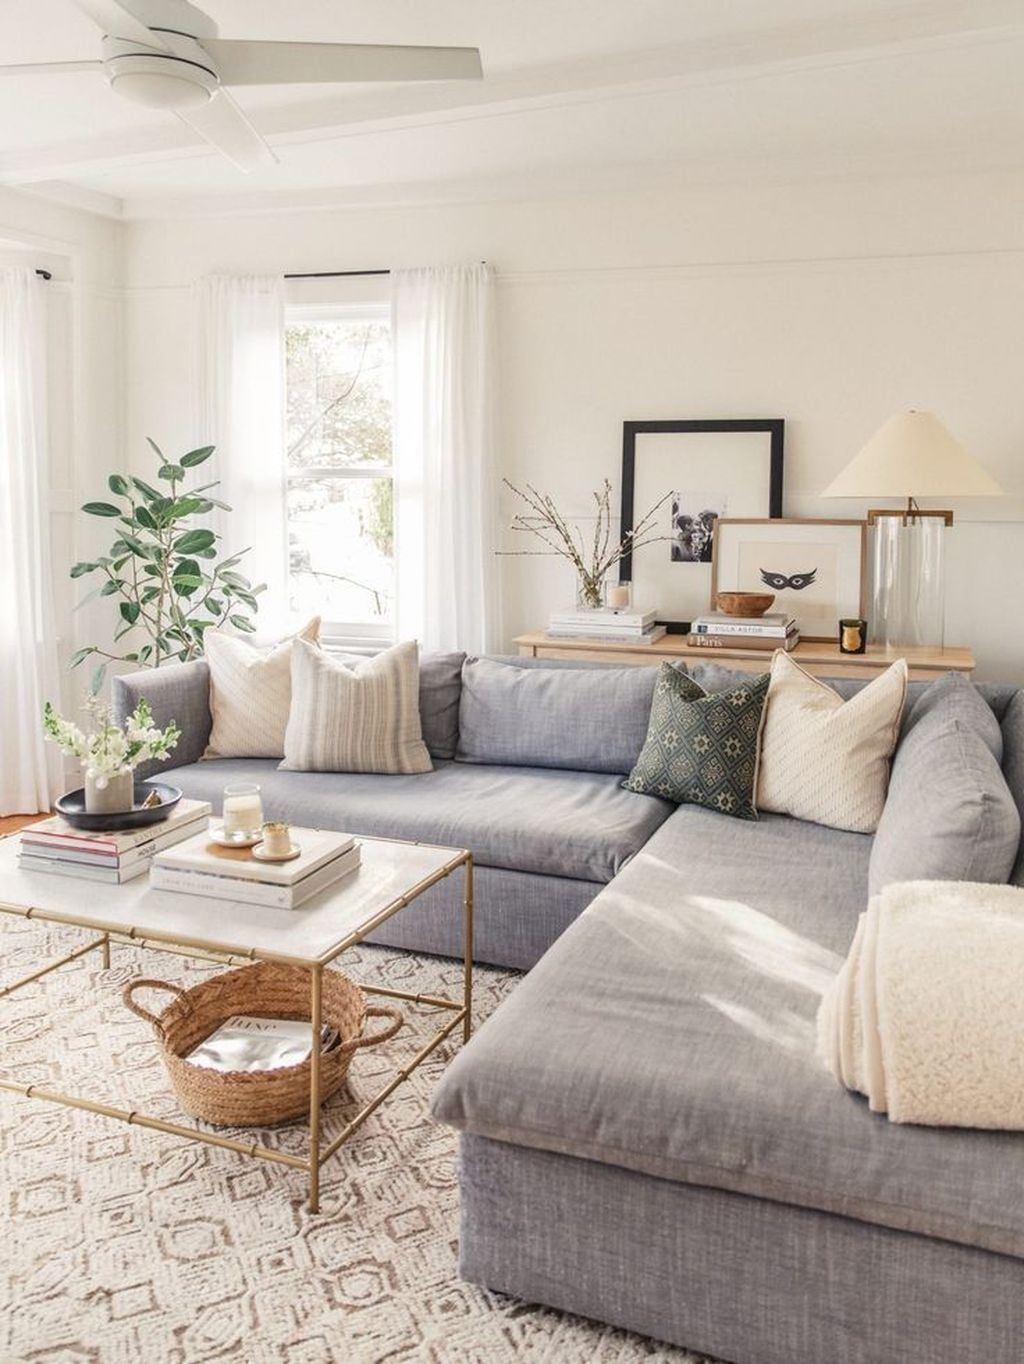 The Best Living Room Decorating Ideas Trends 2019 43